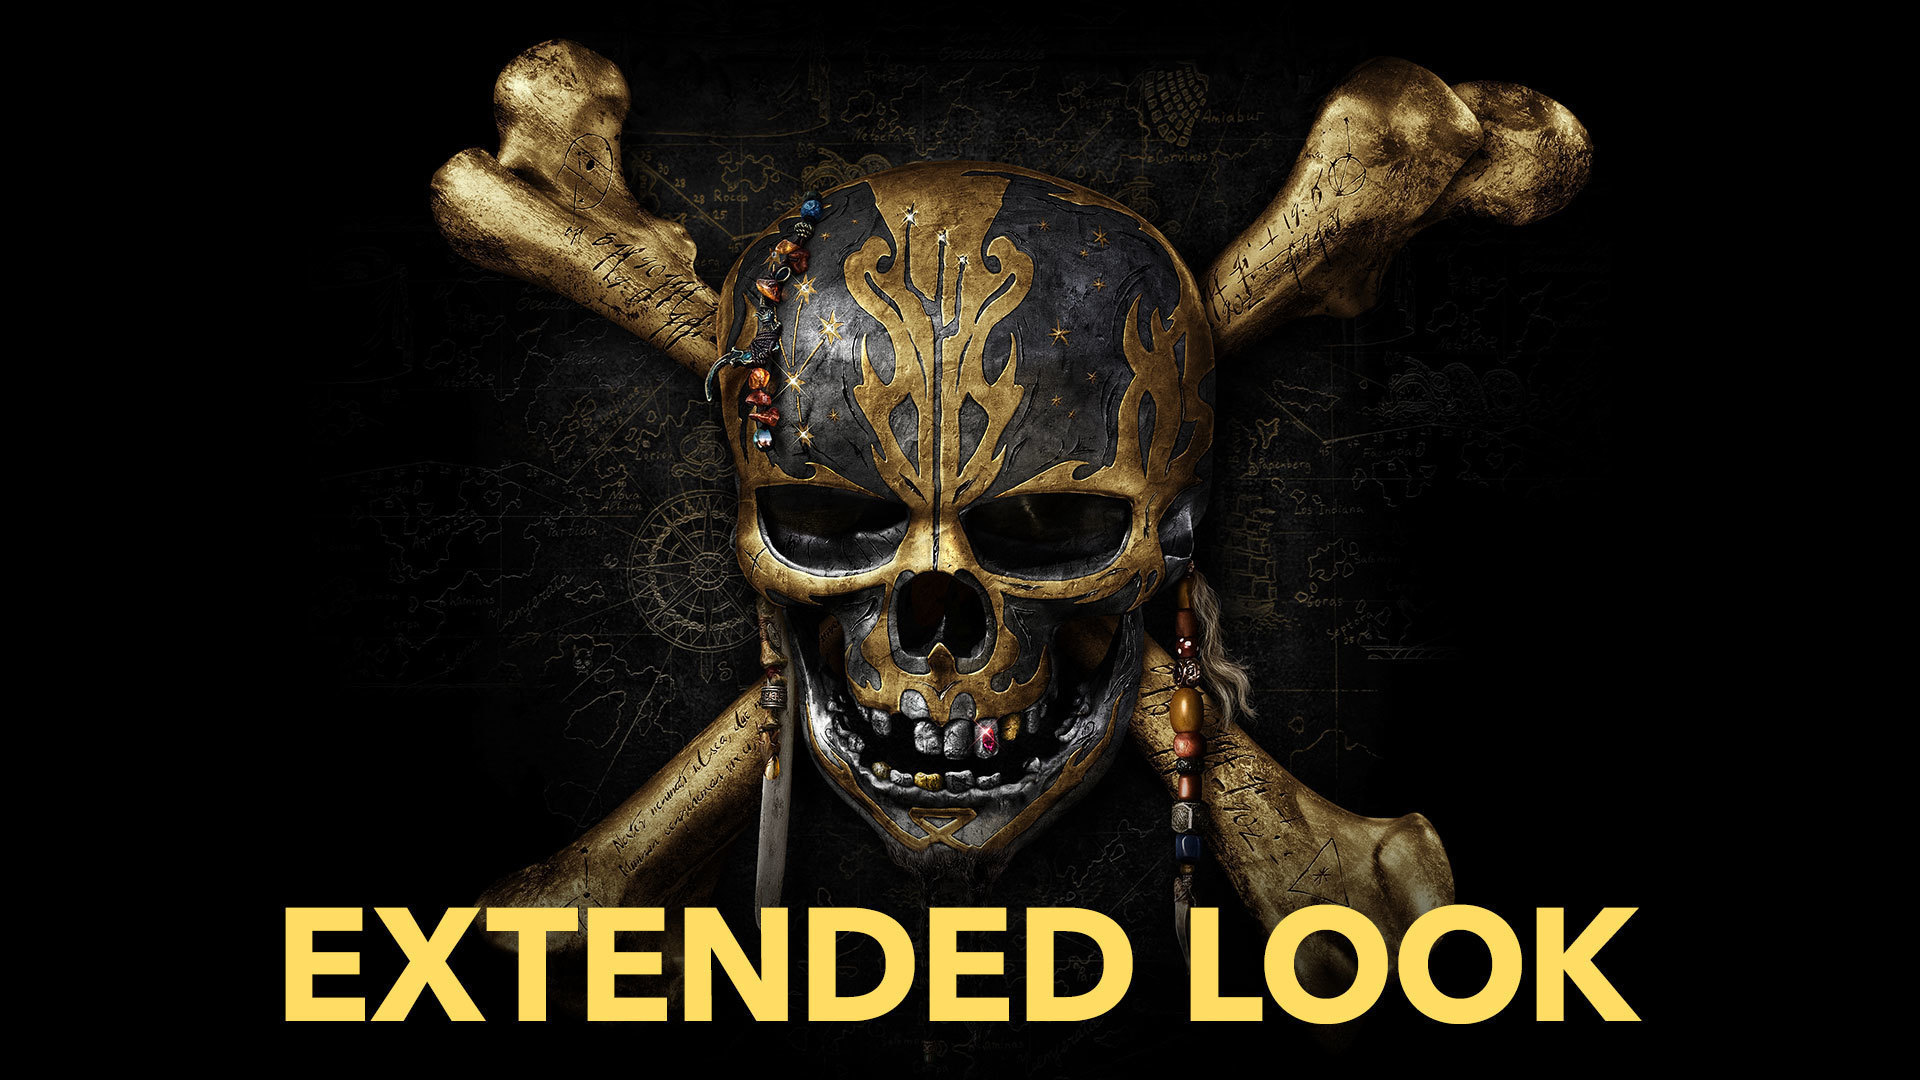 Pirates of the Caribbean: Dead Men Tell No Tales - Extended Look